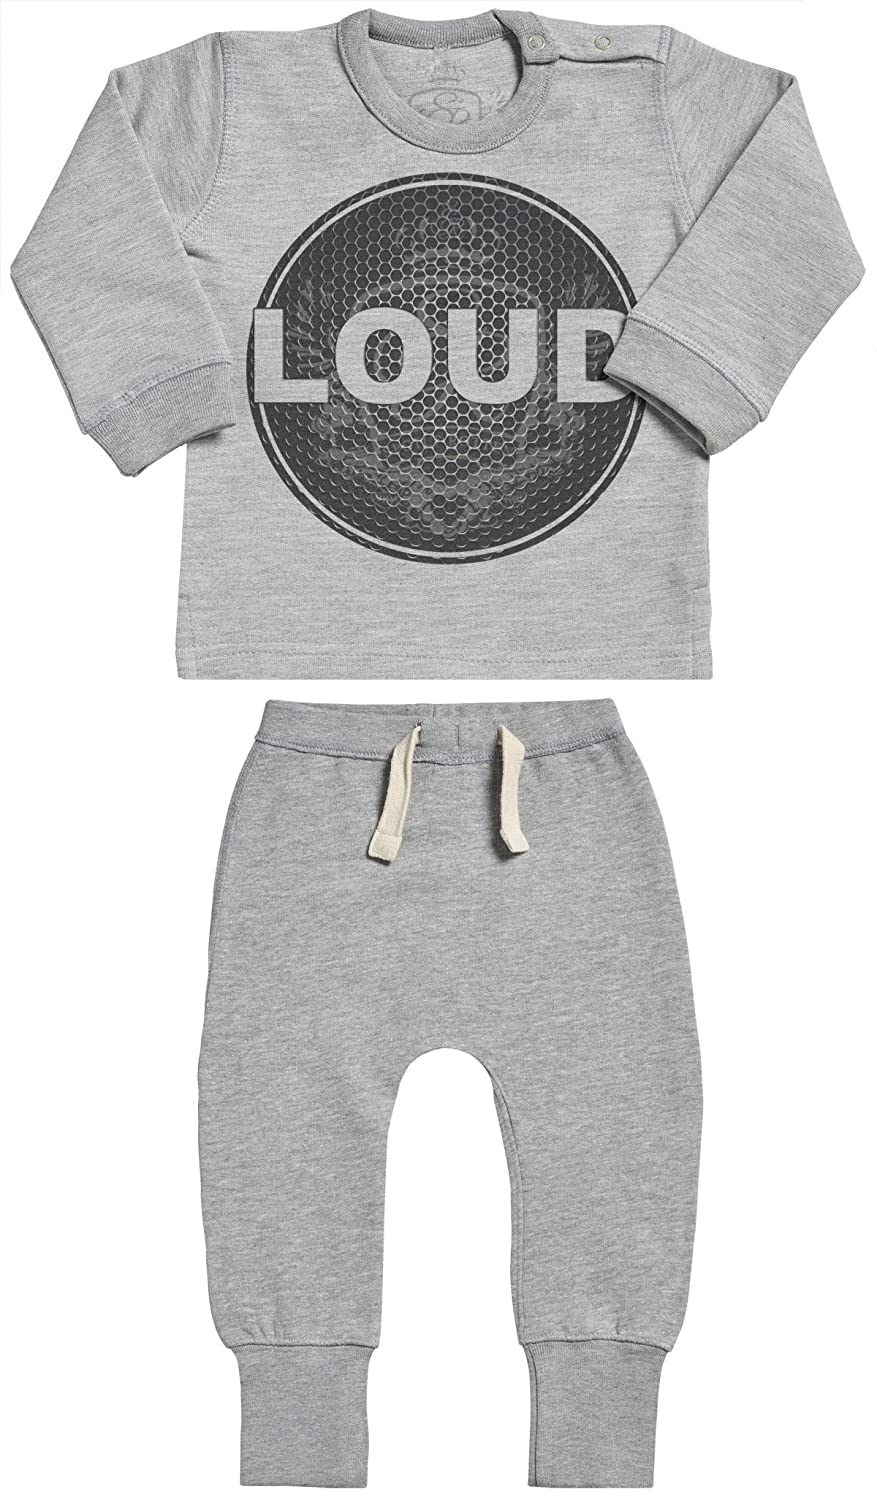 Baby Clothing Outfit SR Loud Baby Outfit Baby Gift Set Baby Sweater /& Baby Joggers